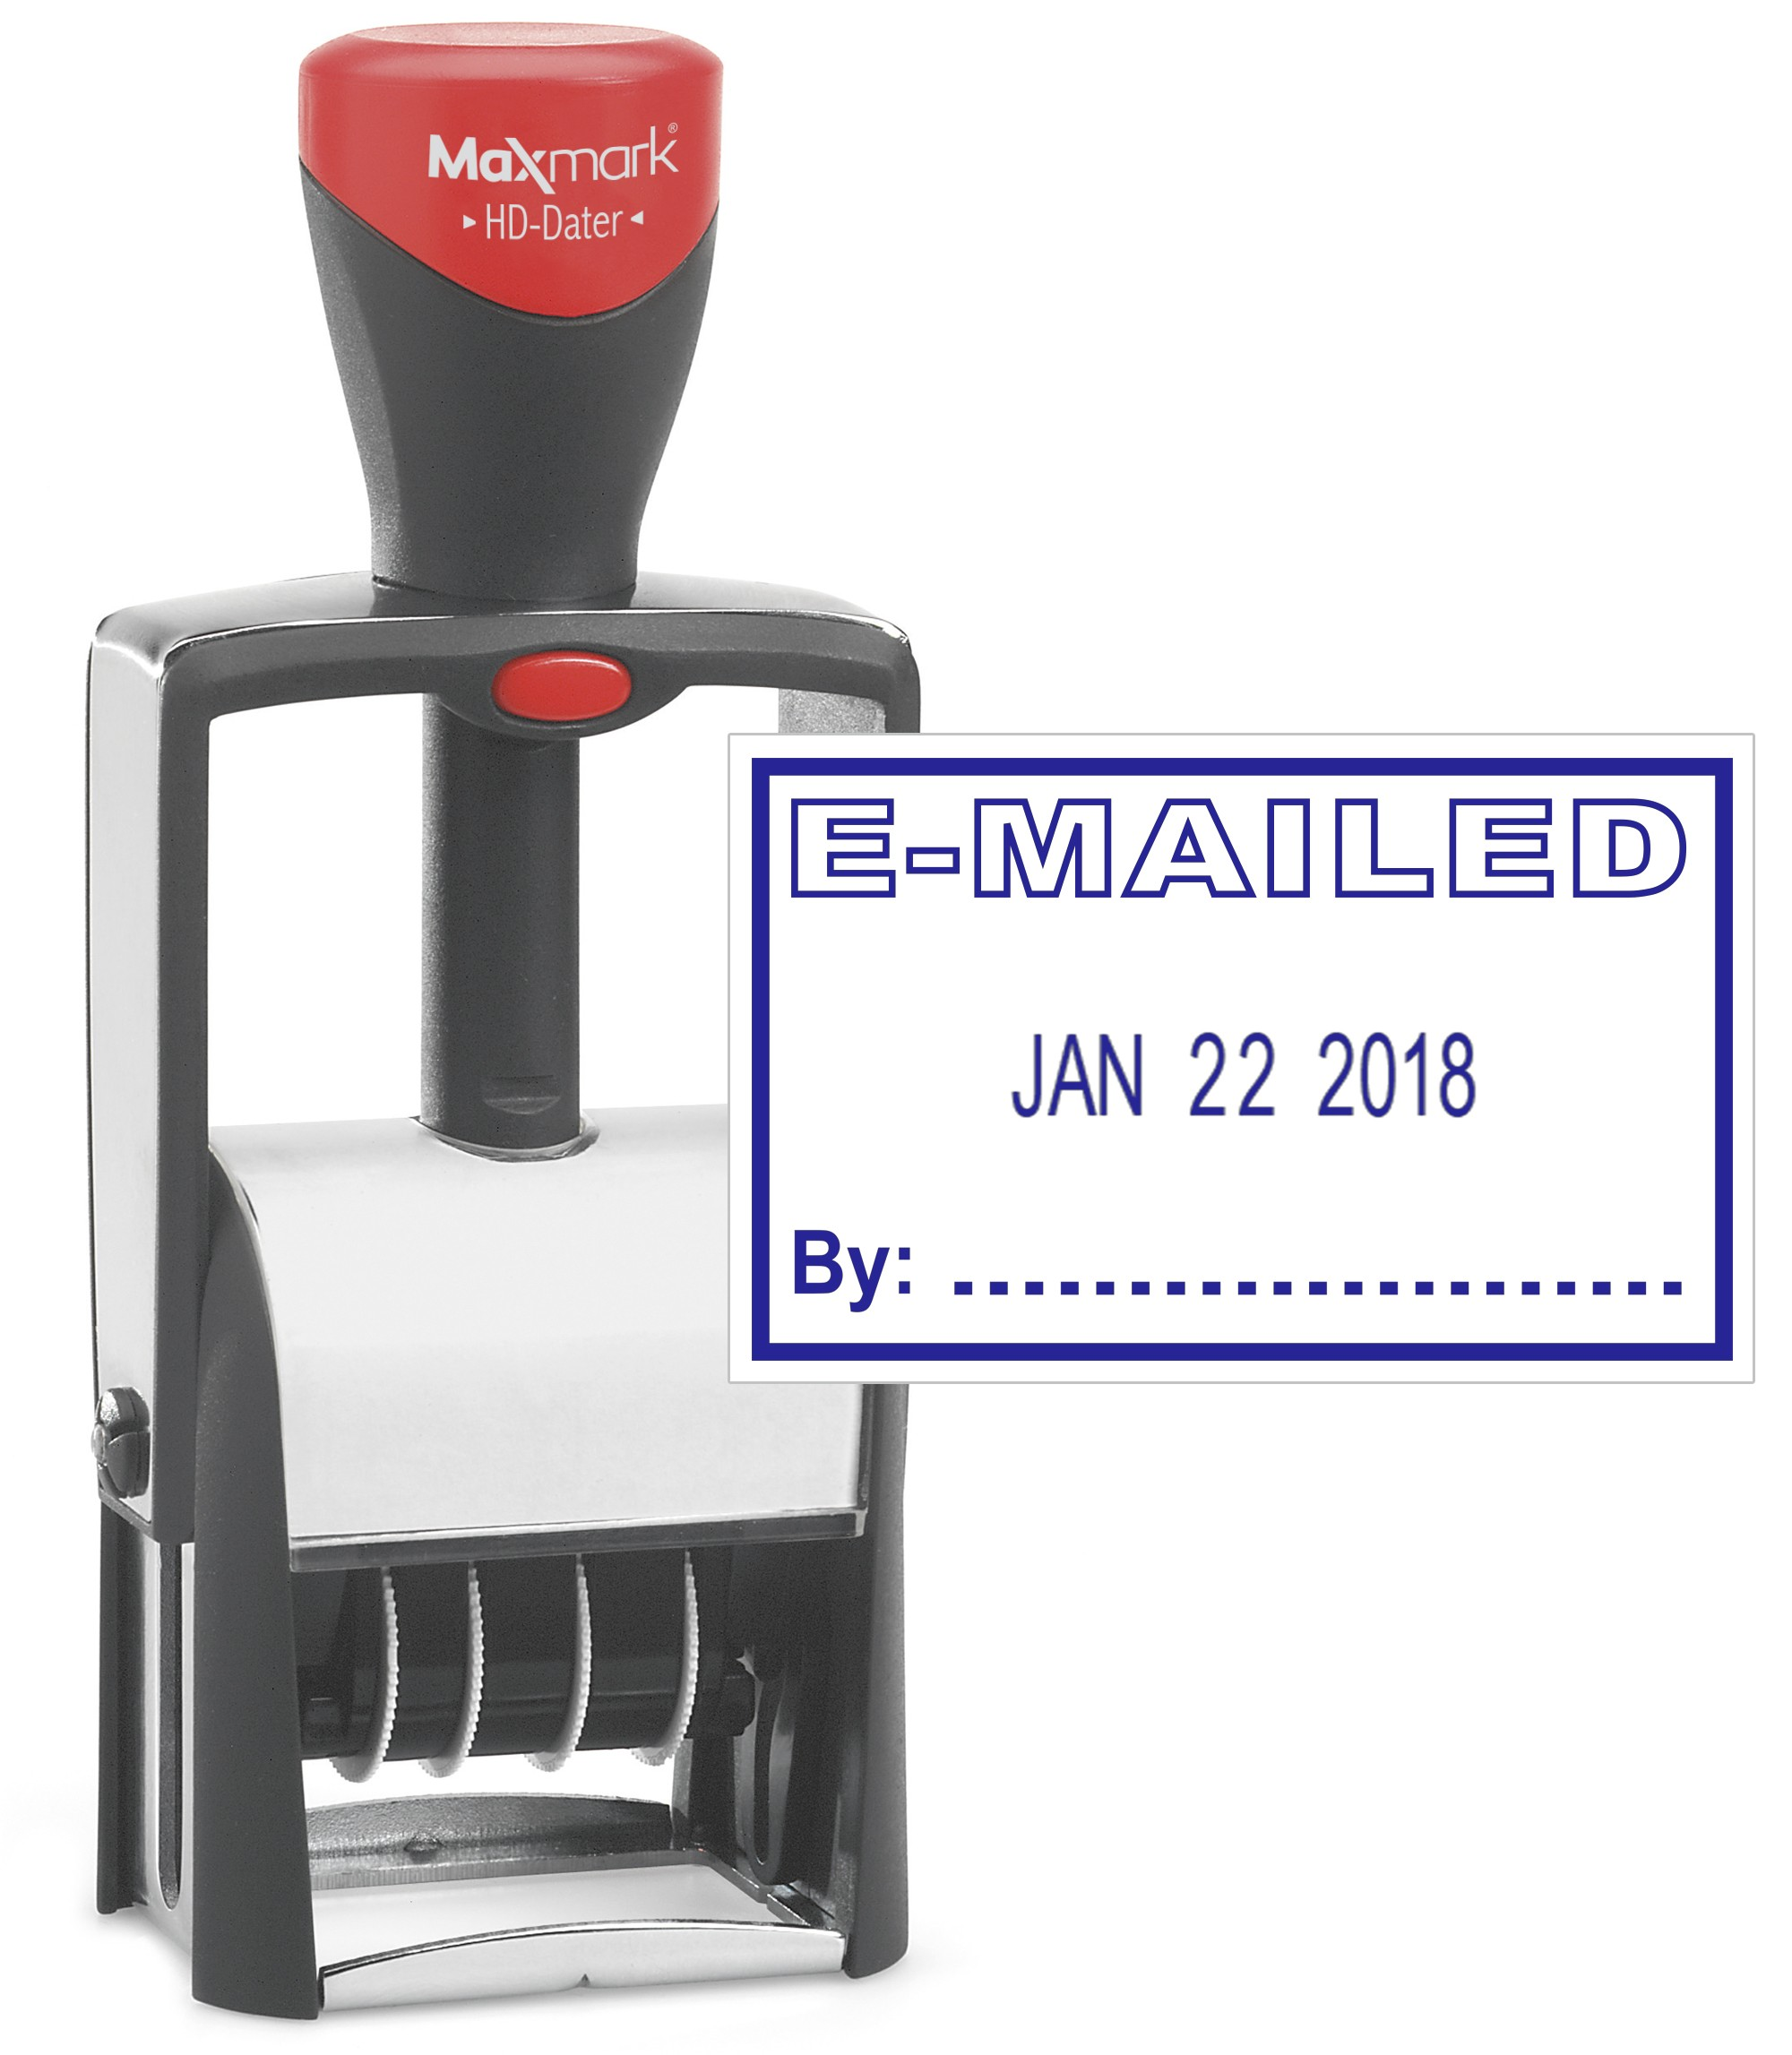 Heavy Duty Date Stamp With EMAILED Self Inking